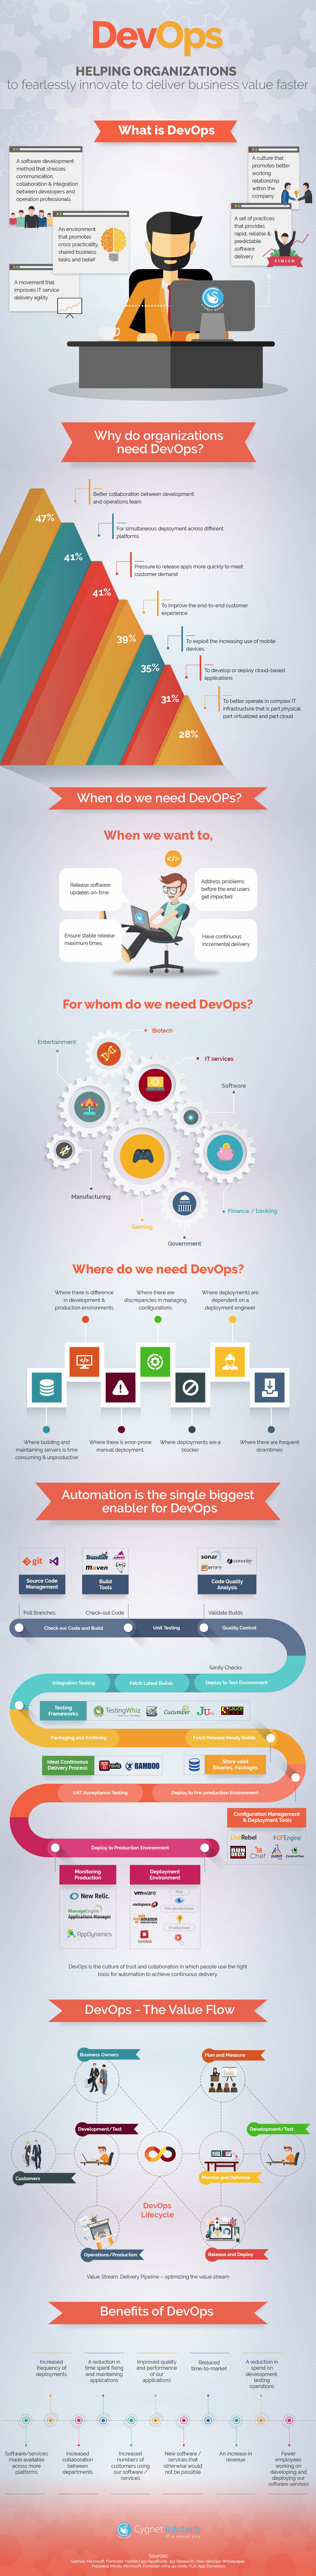 DevOps and Its Use Cases [Infographic]